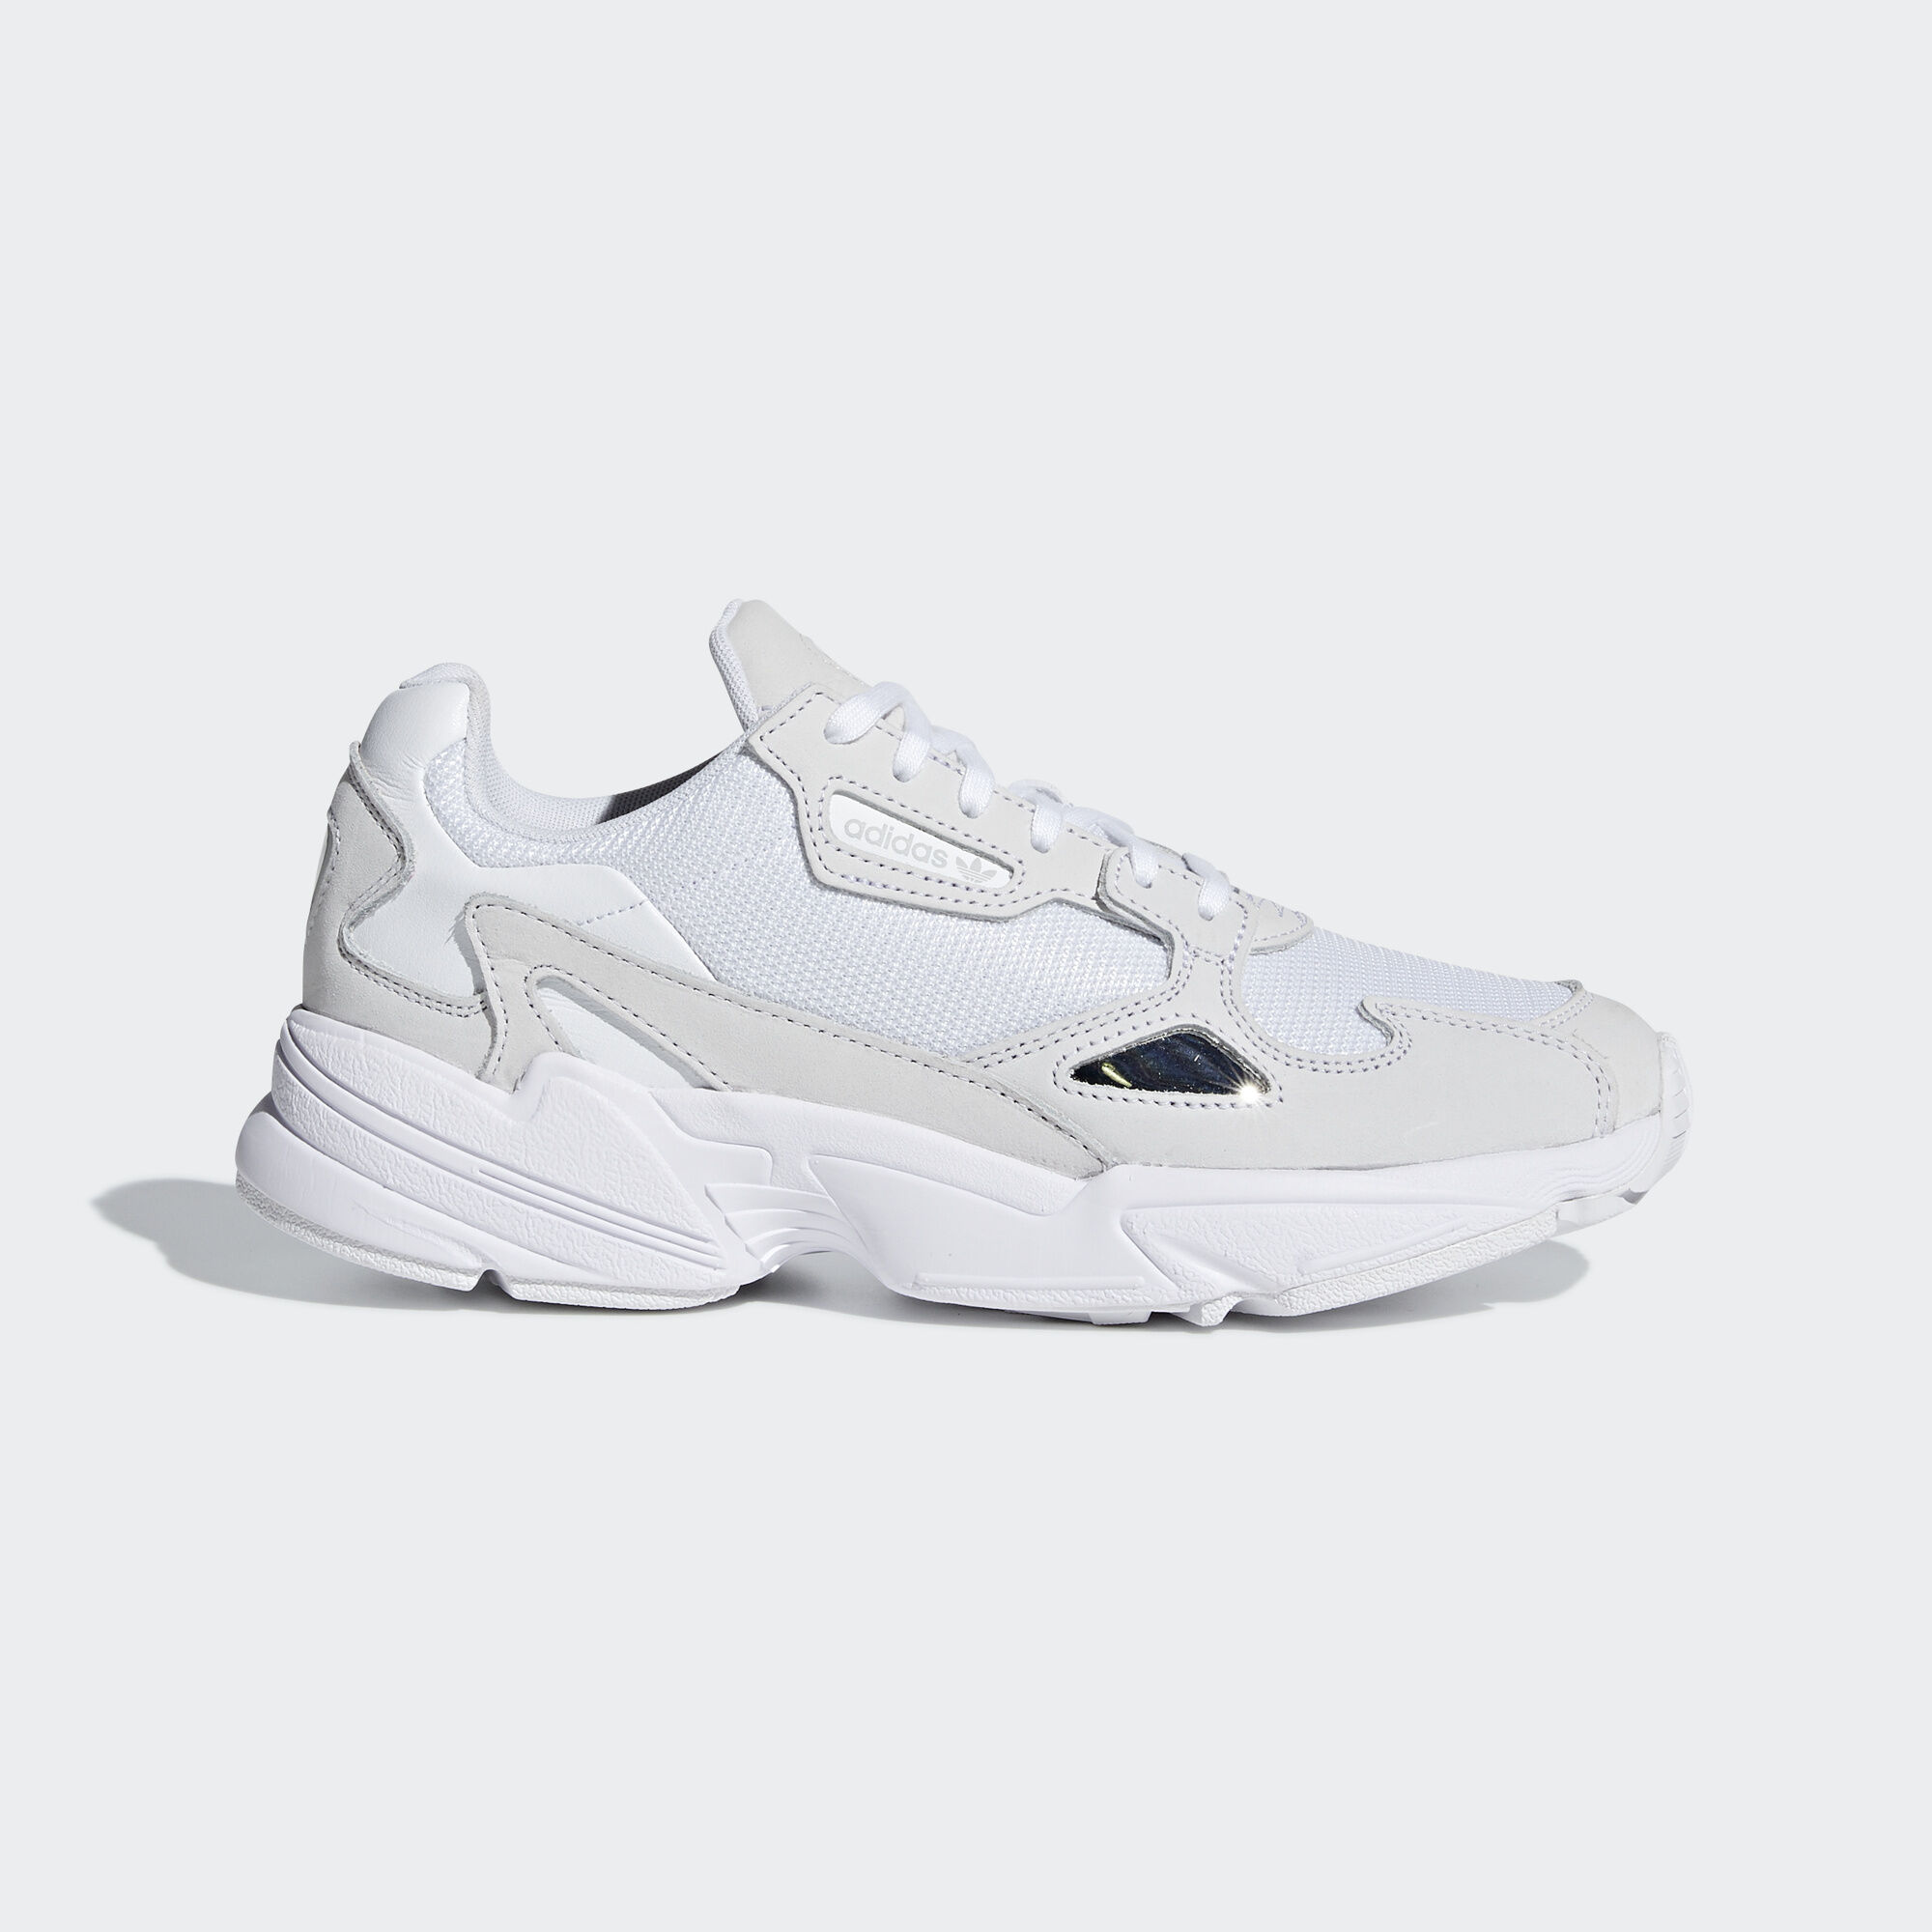 new style 2a752 99d53 adidas - Falcon Shoes Ftwr White  Ftwr White  Crystal White B28128. Women  Originals